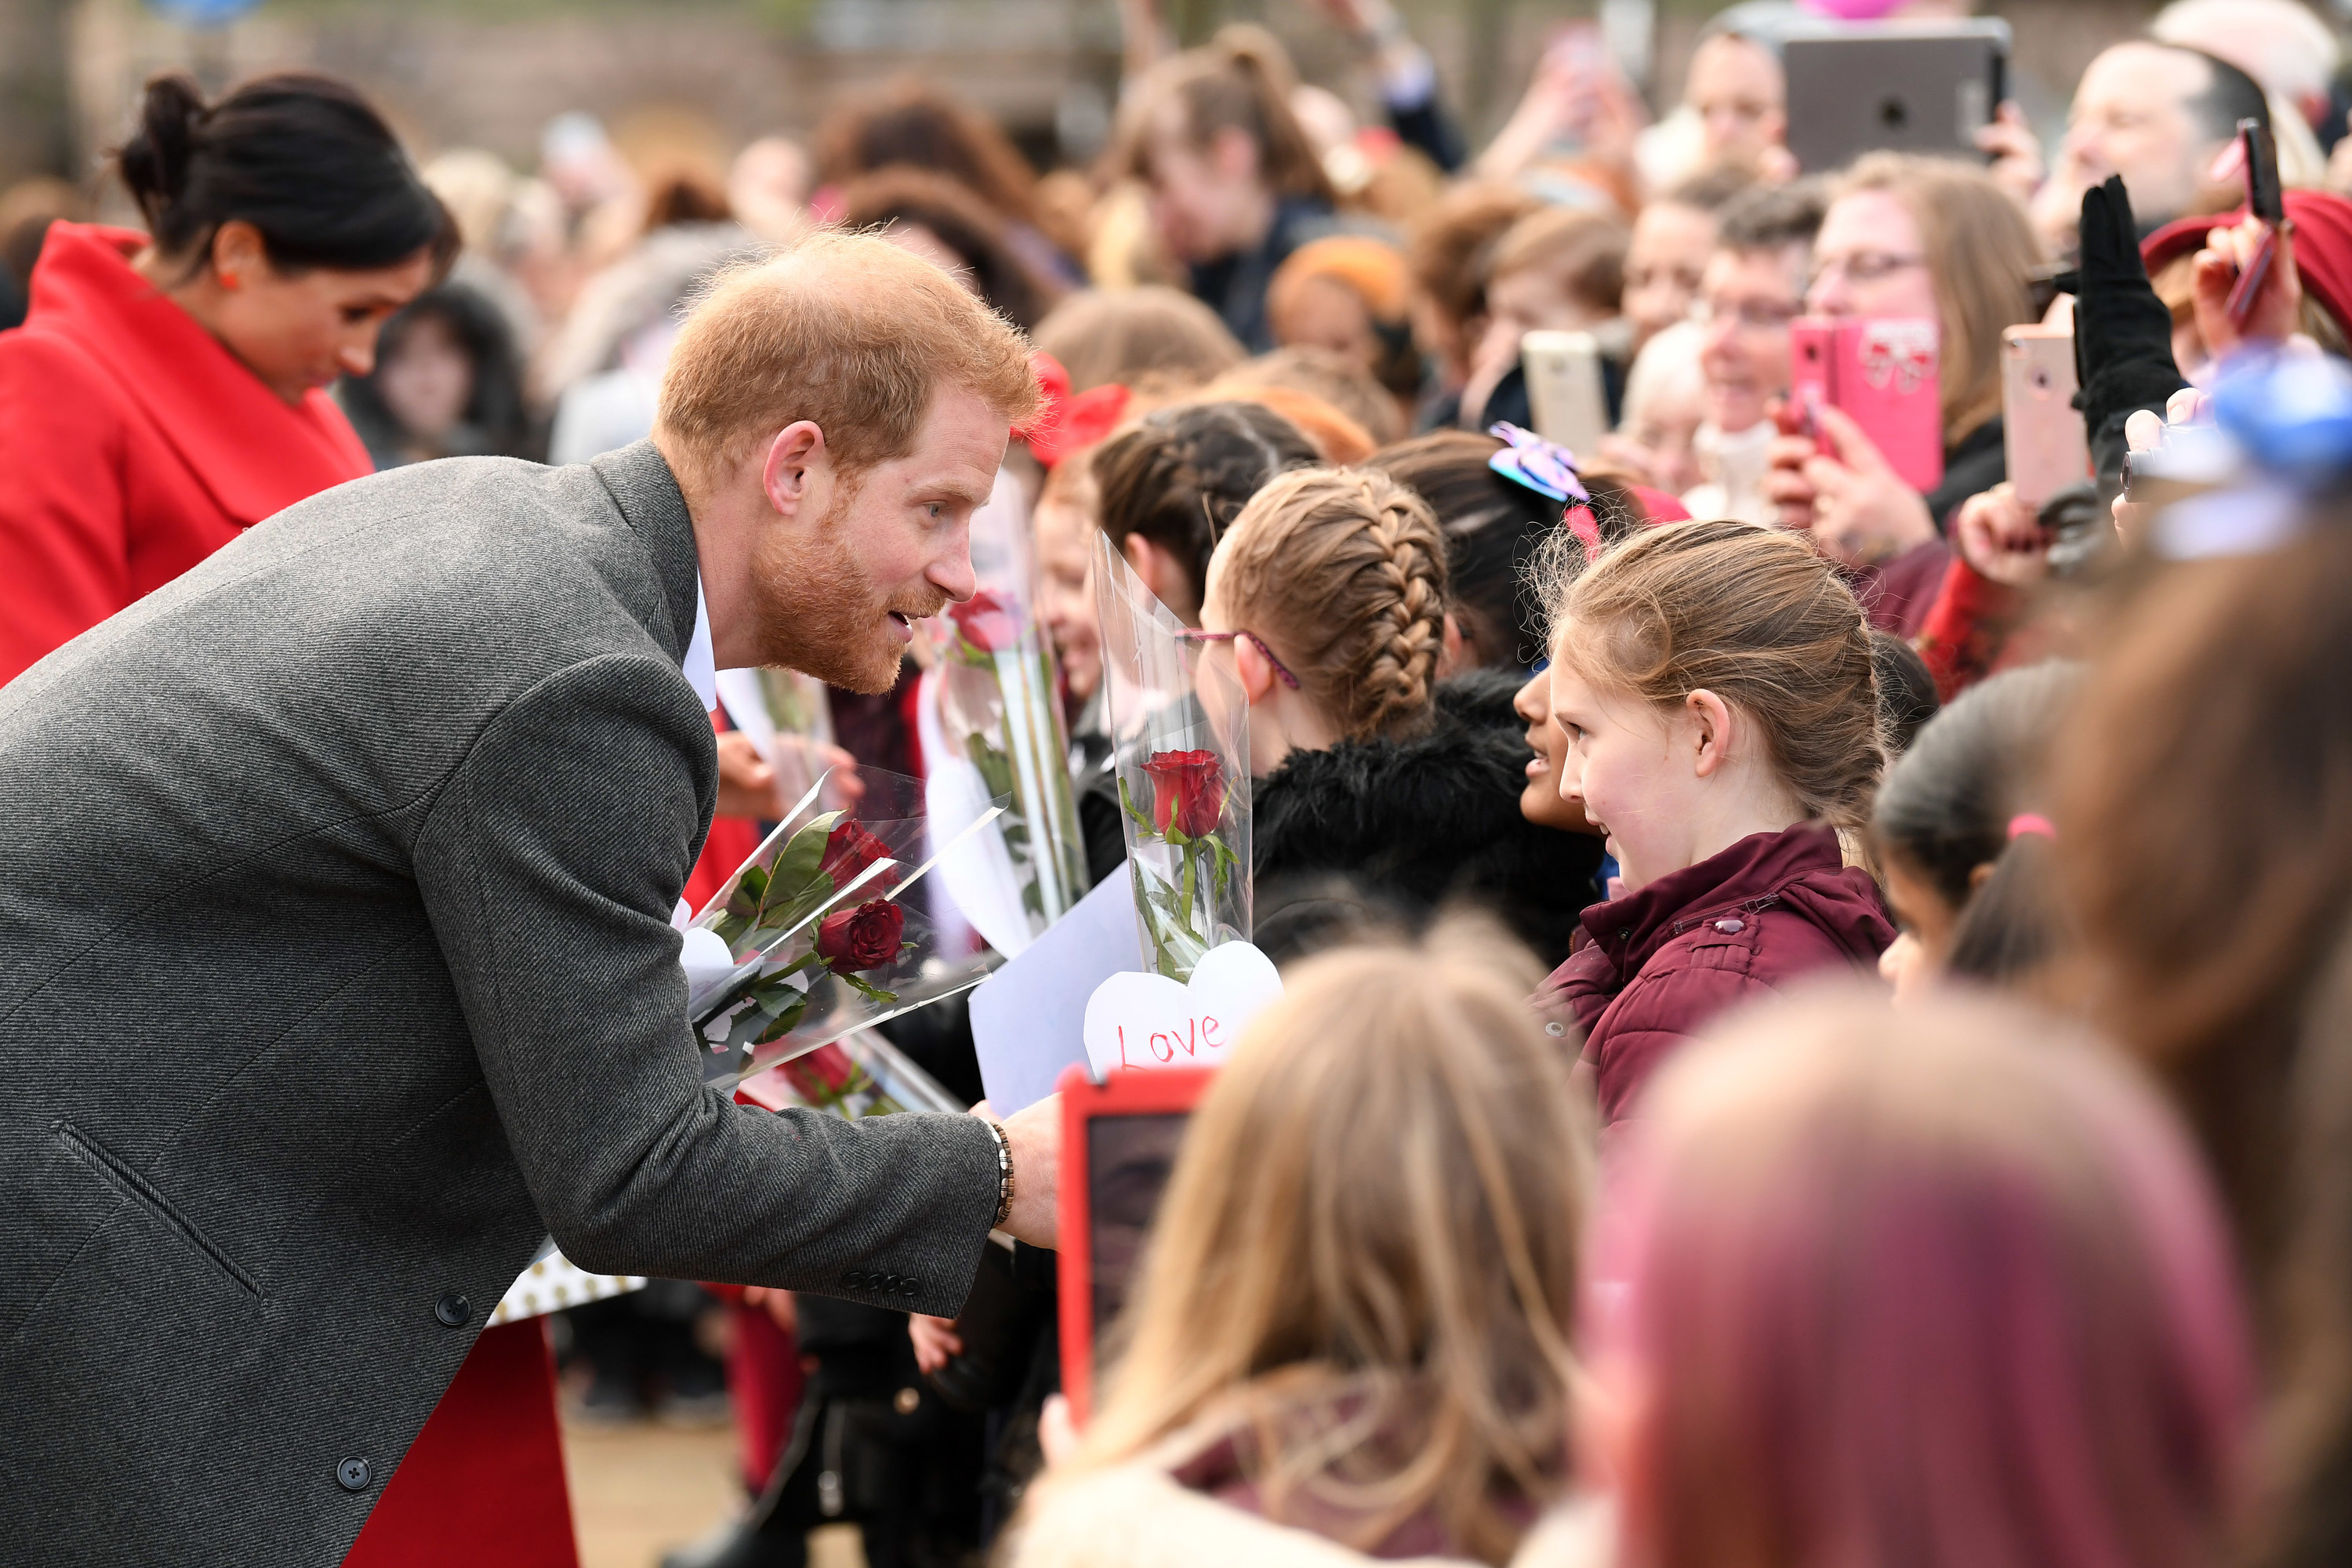 Prince Harry, Duke of Sussex meets members of the public during a visit of Birkenhead at Hamilton Square on January 14, 2019 in Birkenhead, UK